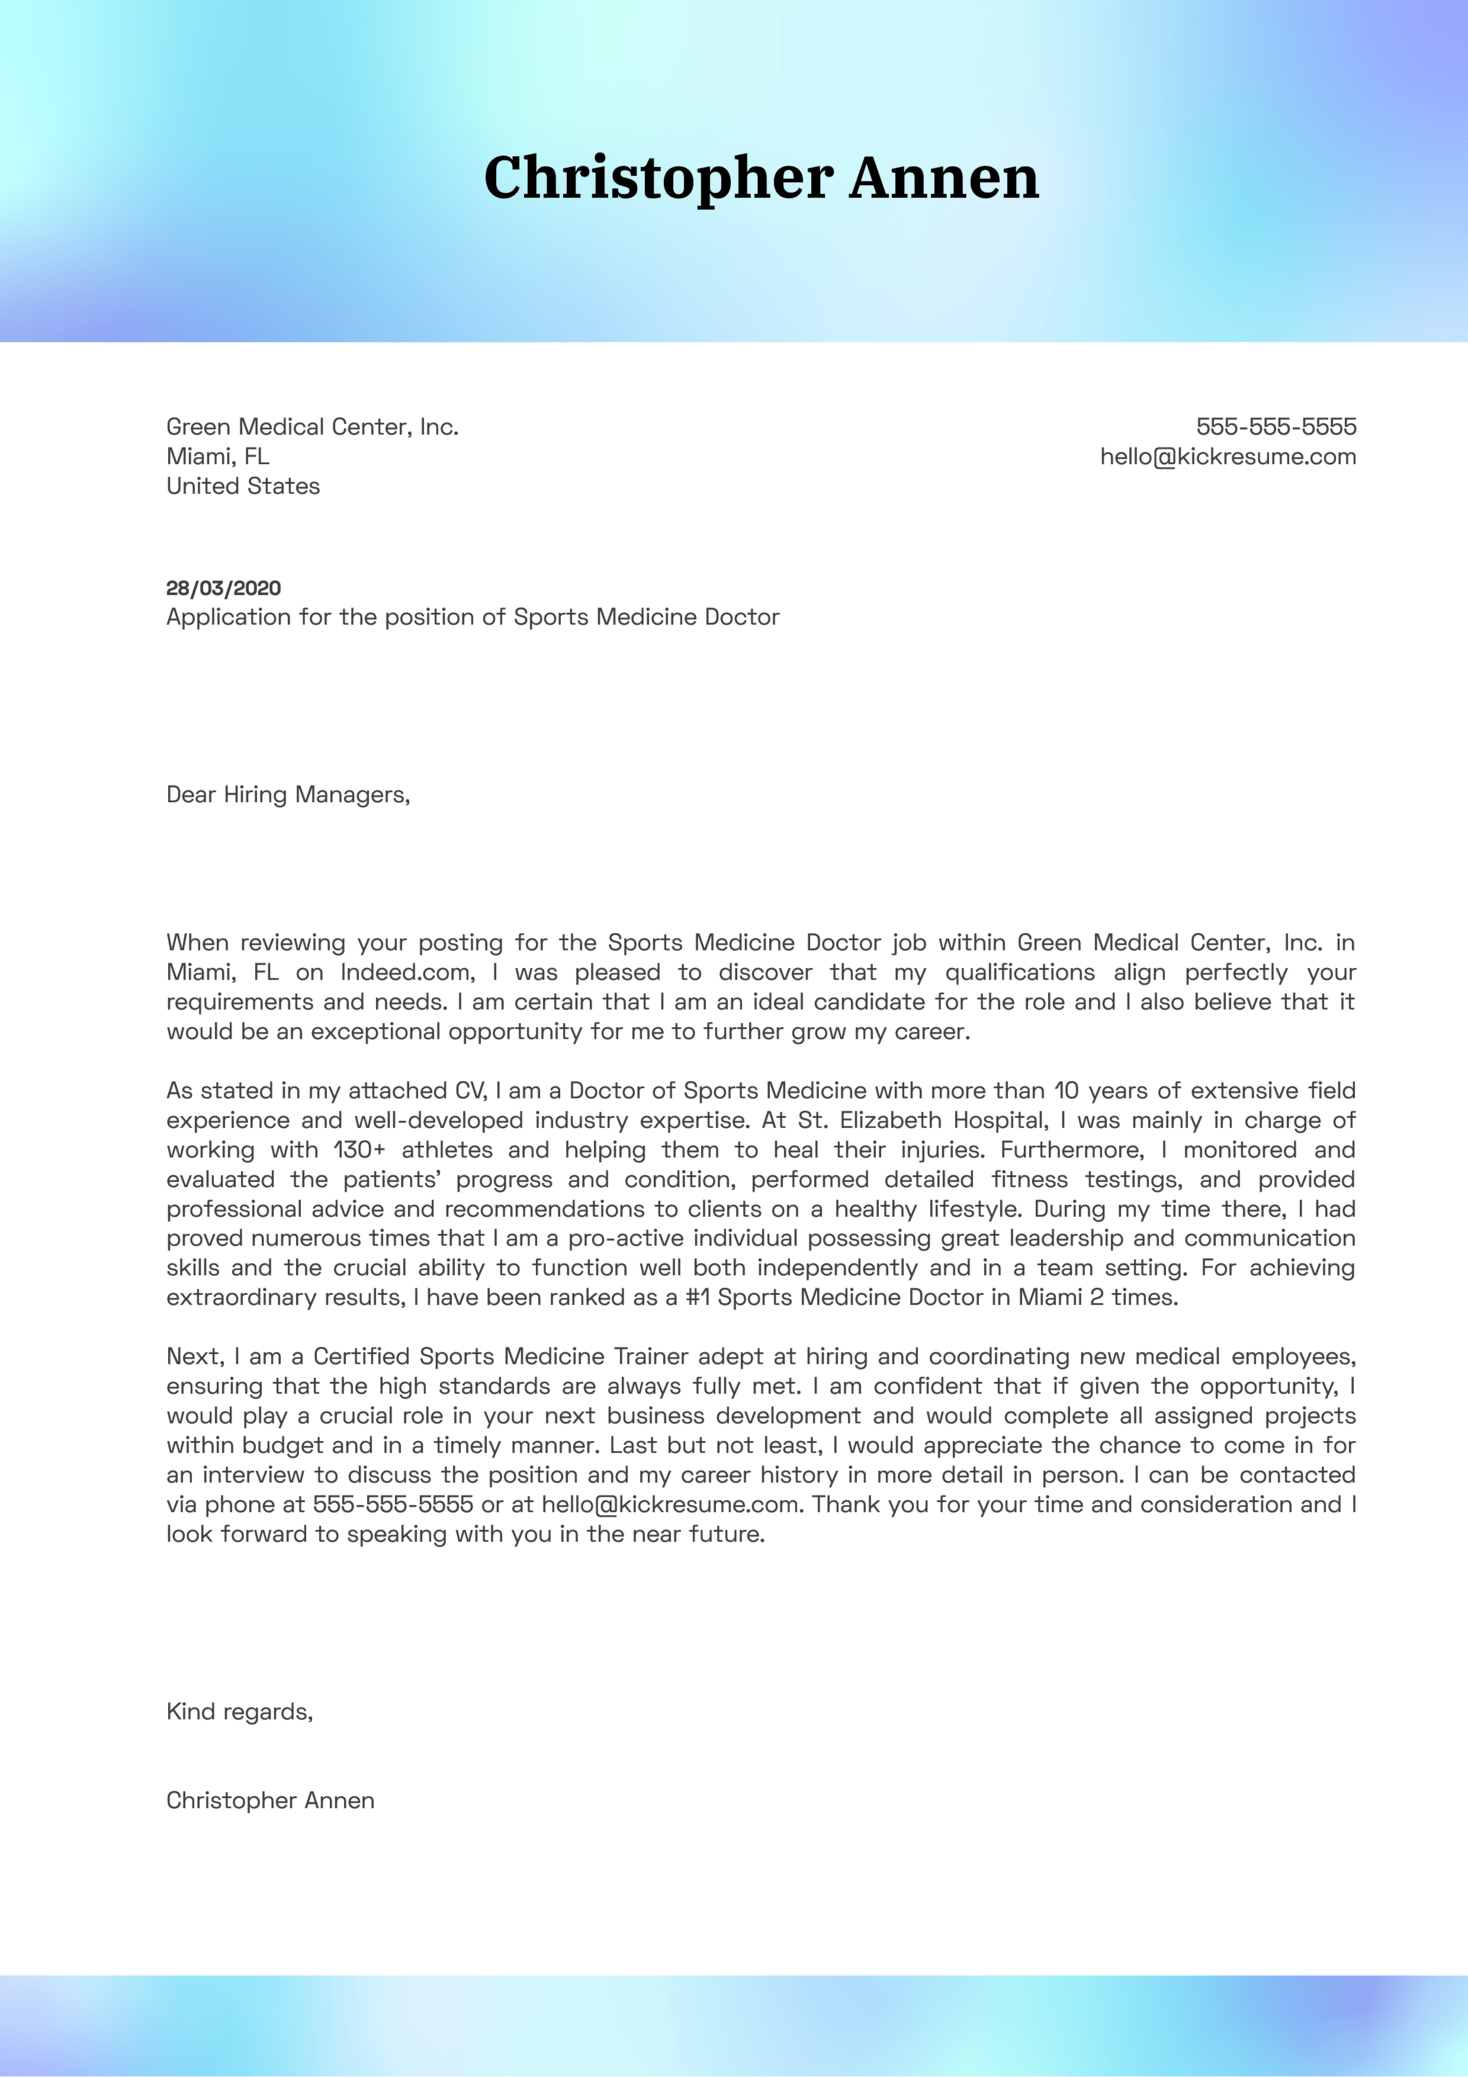 Sports Medicine Doctor Cover Letter Example